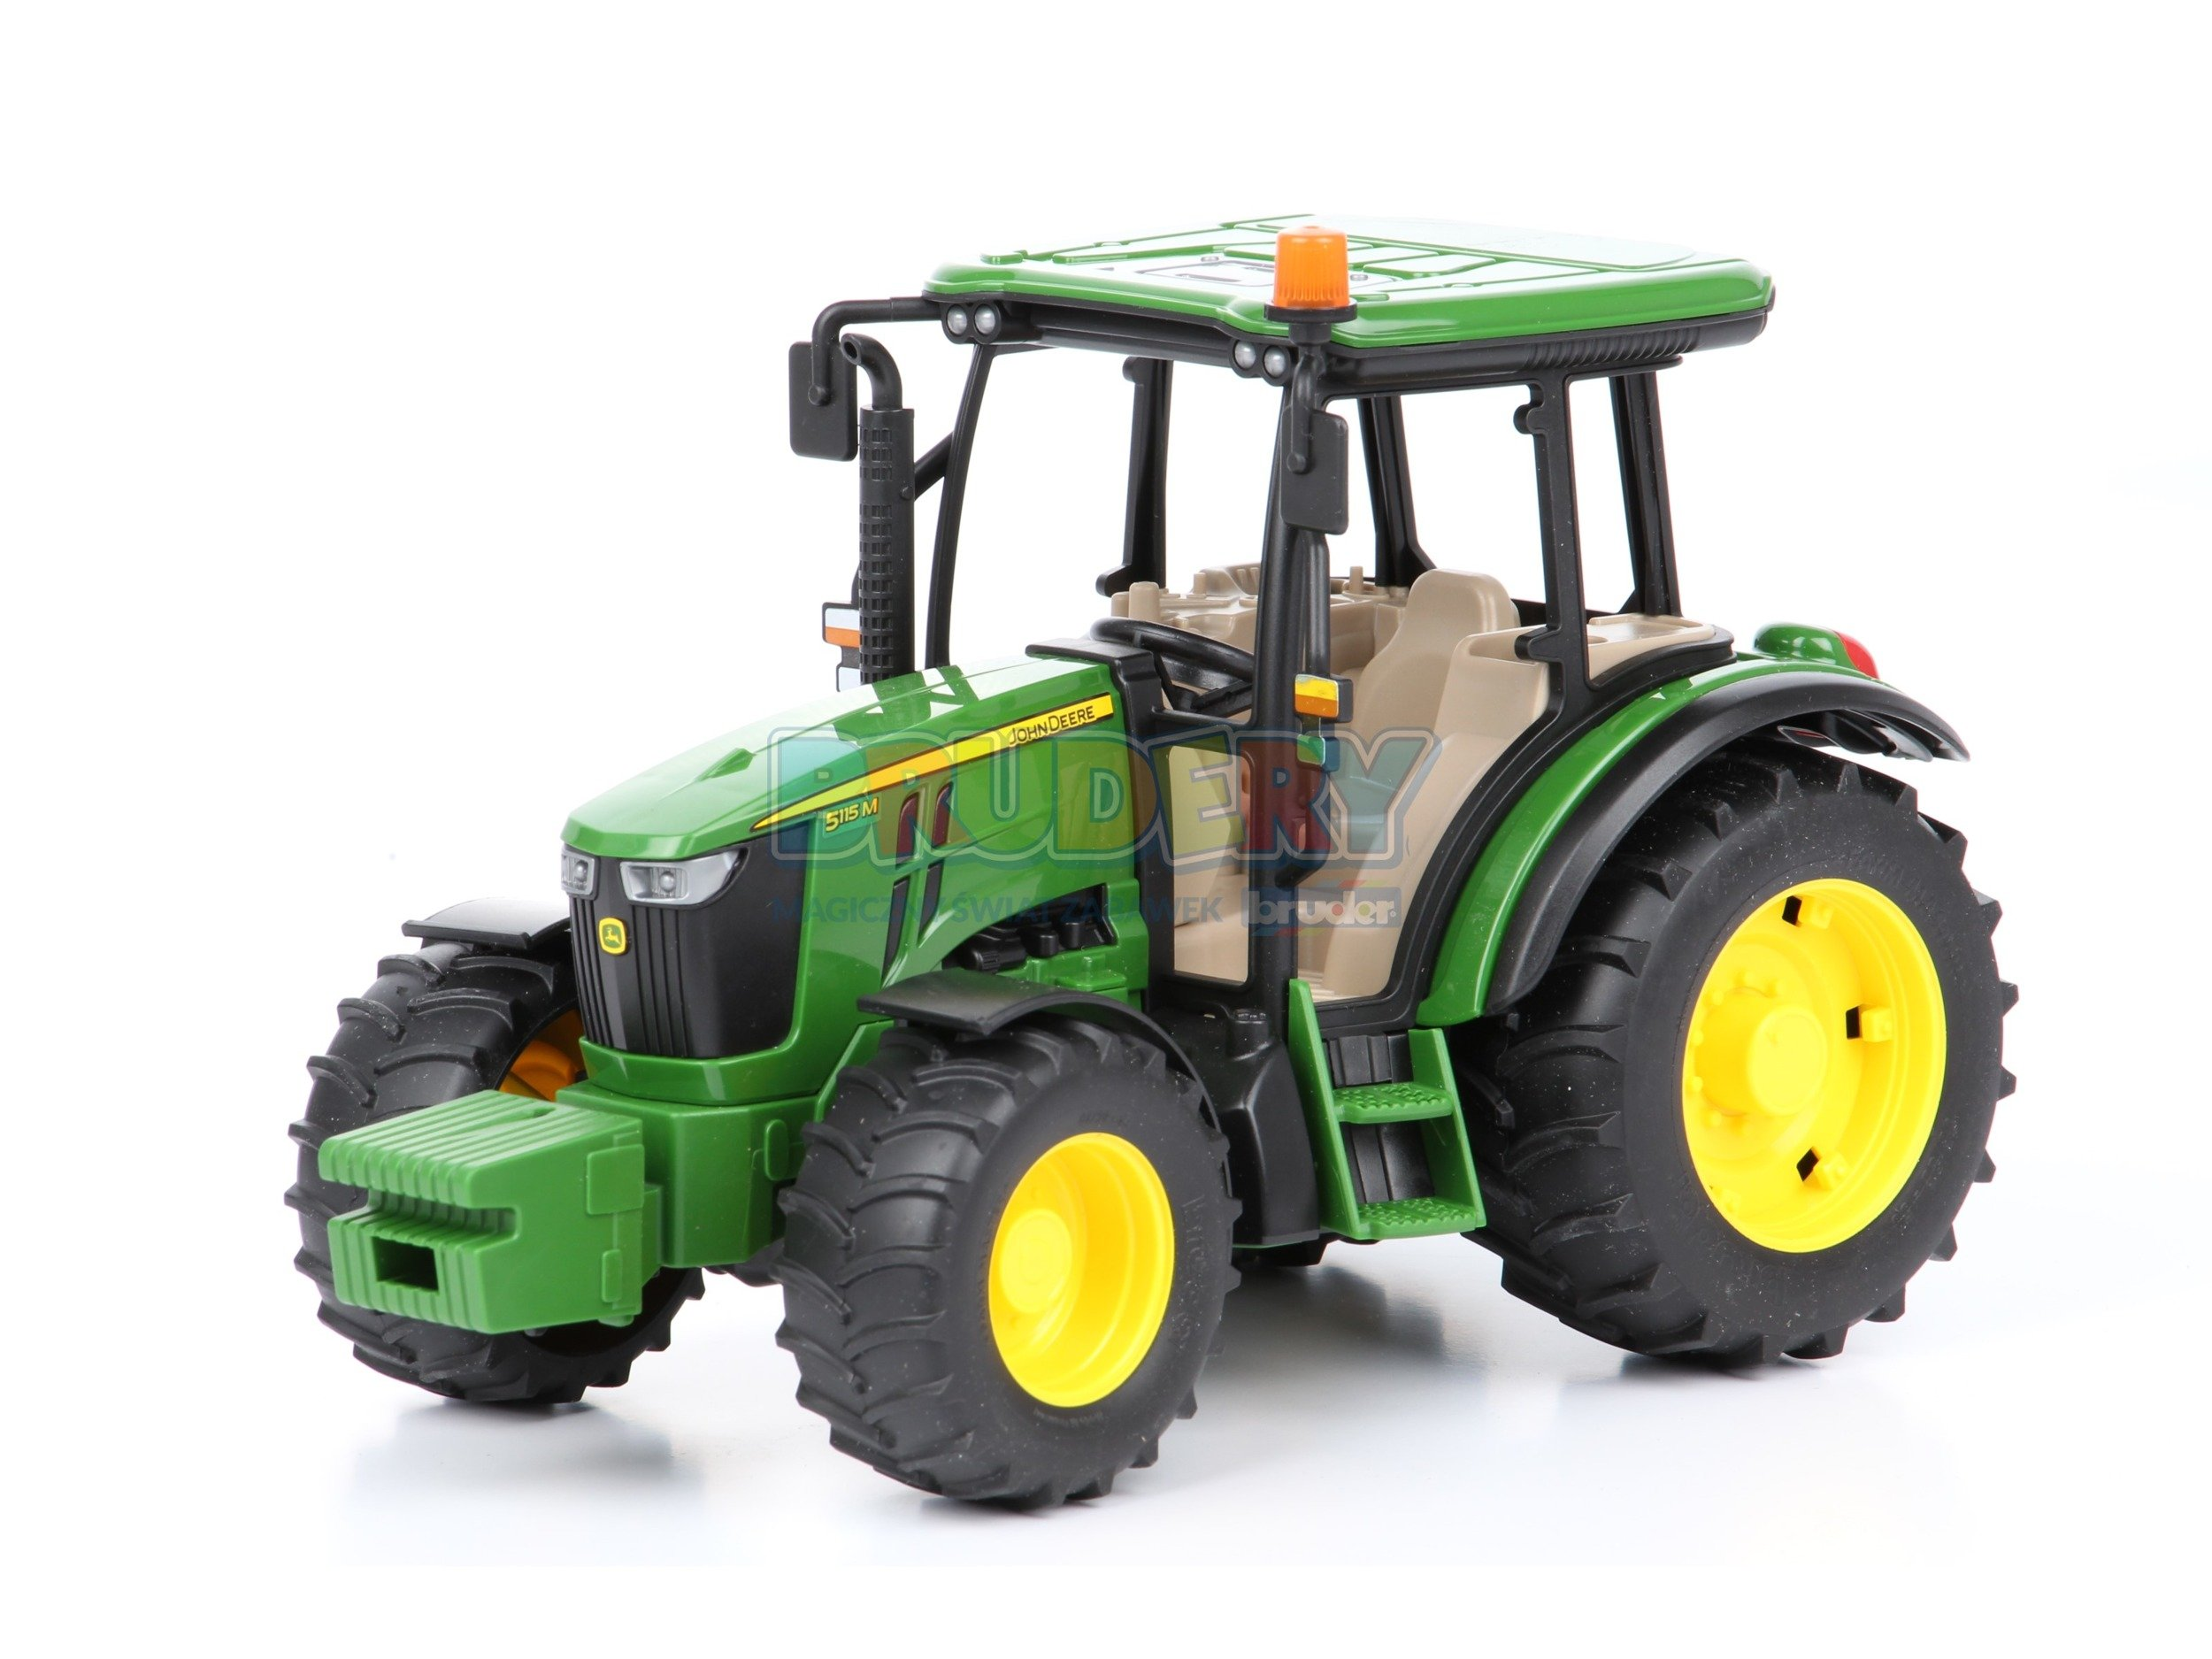 bruder 02106 traktor john deere zabawki dla ch opc w brudery. Black Bedroom Furniture Sets. Home Design Ideas